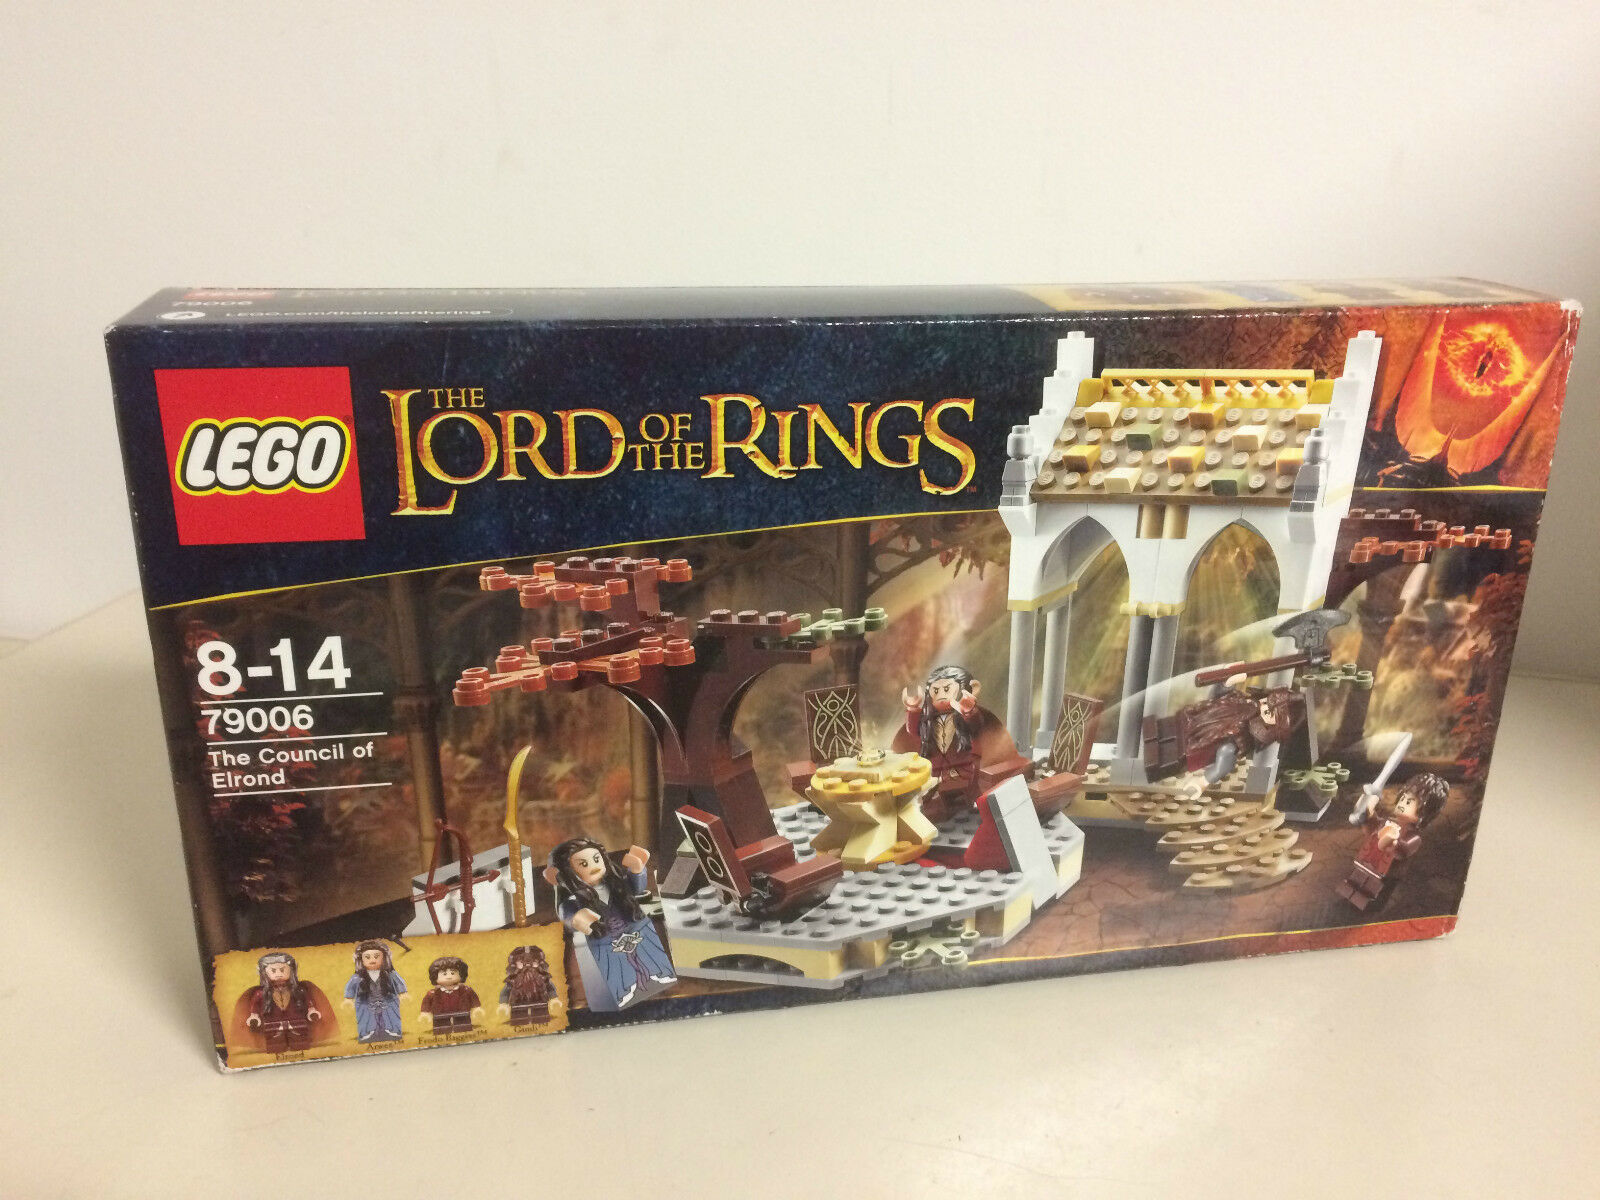 LEGO LORD OF THE RINGS 79006 THE COUNCIL OF ELROND new Nuevo with 4 minifigures